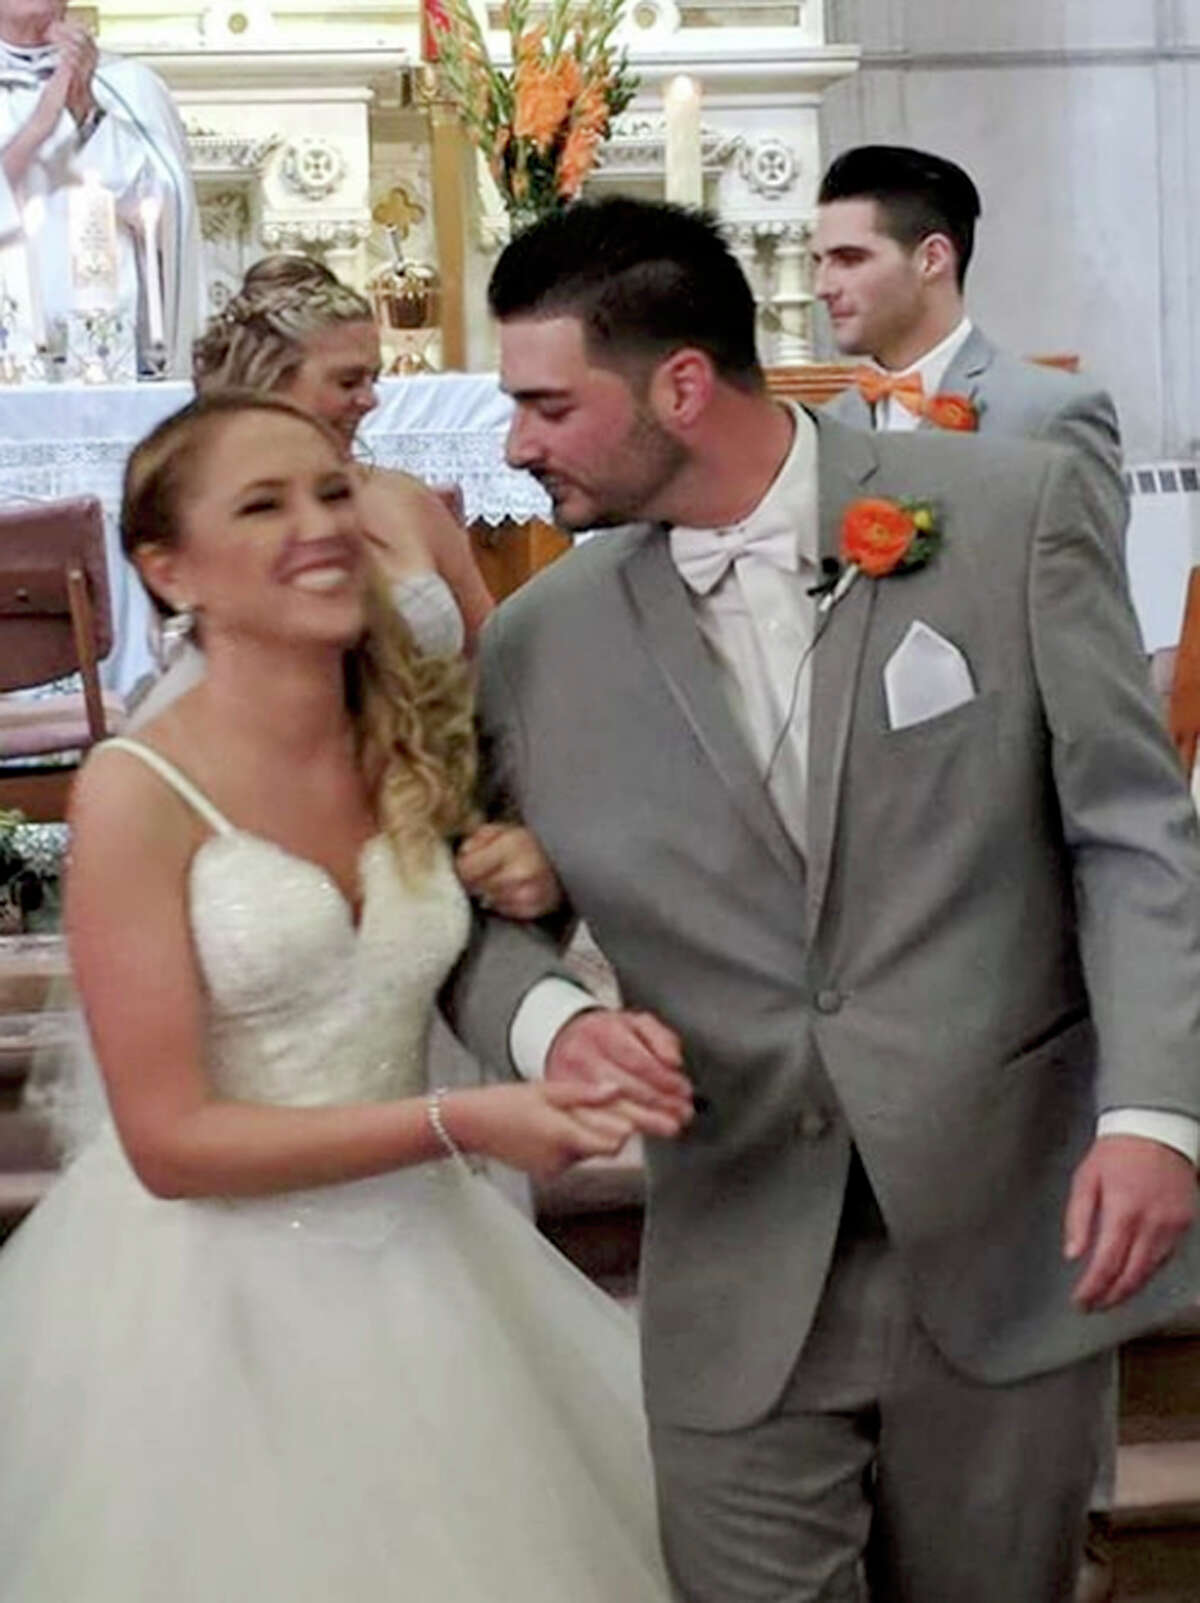 In this June 8, 2018 photograph provided by Valerie Lynne Abeling, Erin and Shane McGowan attend their wedding reception in Amsterdam, N.Y. The couple were among the 20 people who died in Saturday's limousine crash in Schoharie, N.Y.